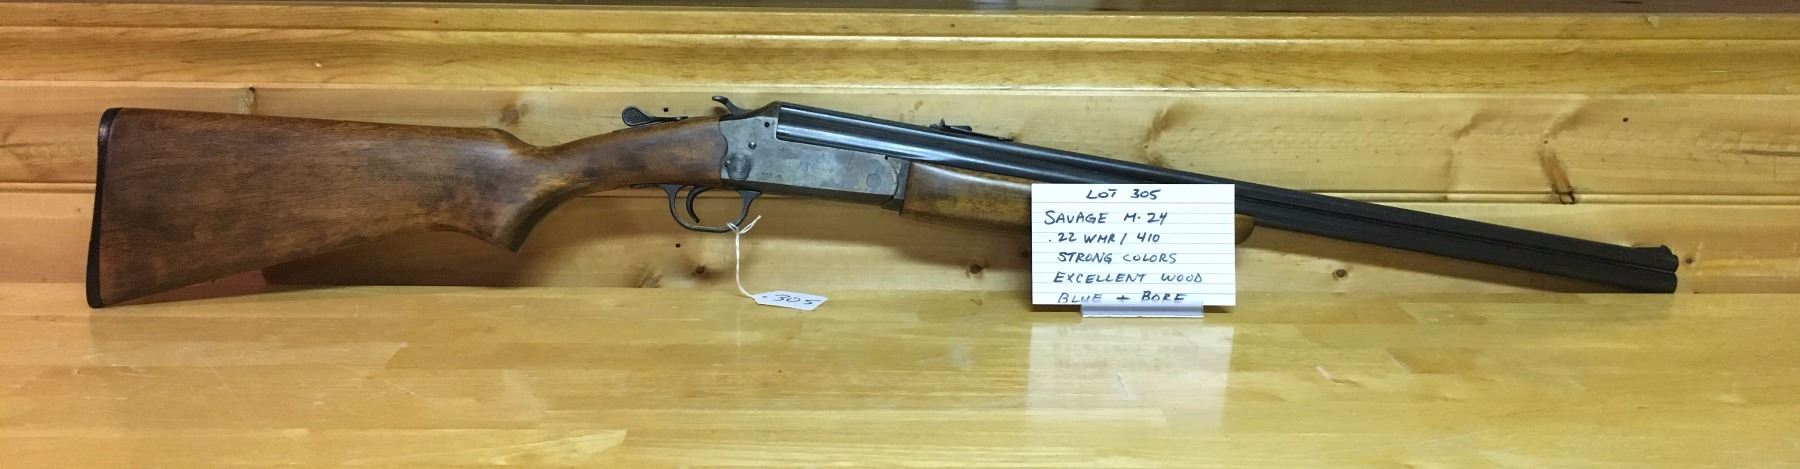 Savage 24 combo rifle/shotgun in carbondale, Illinois gun ...